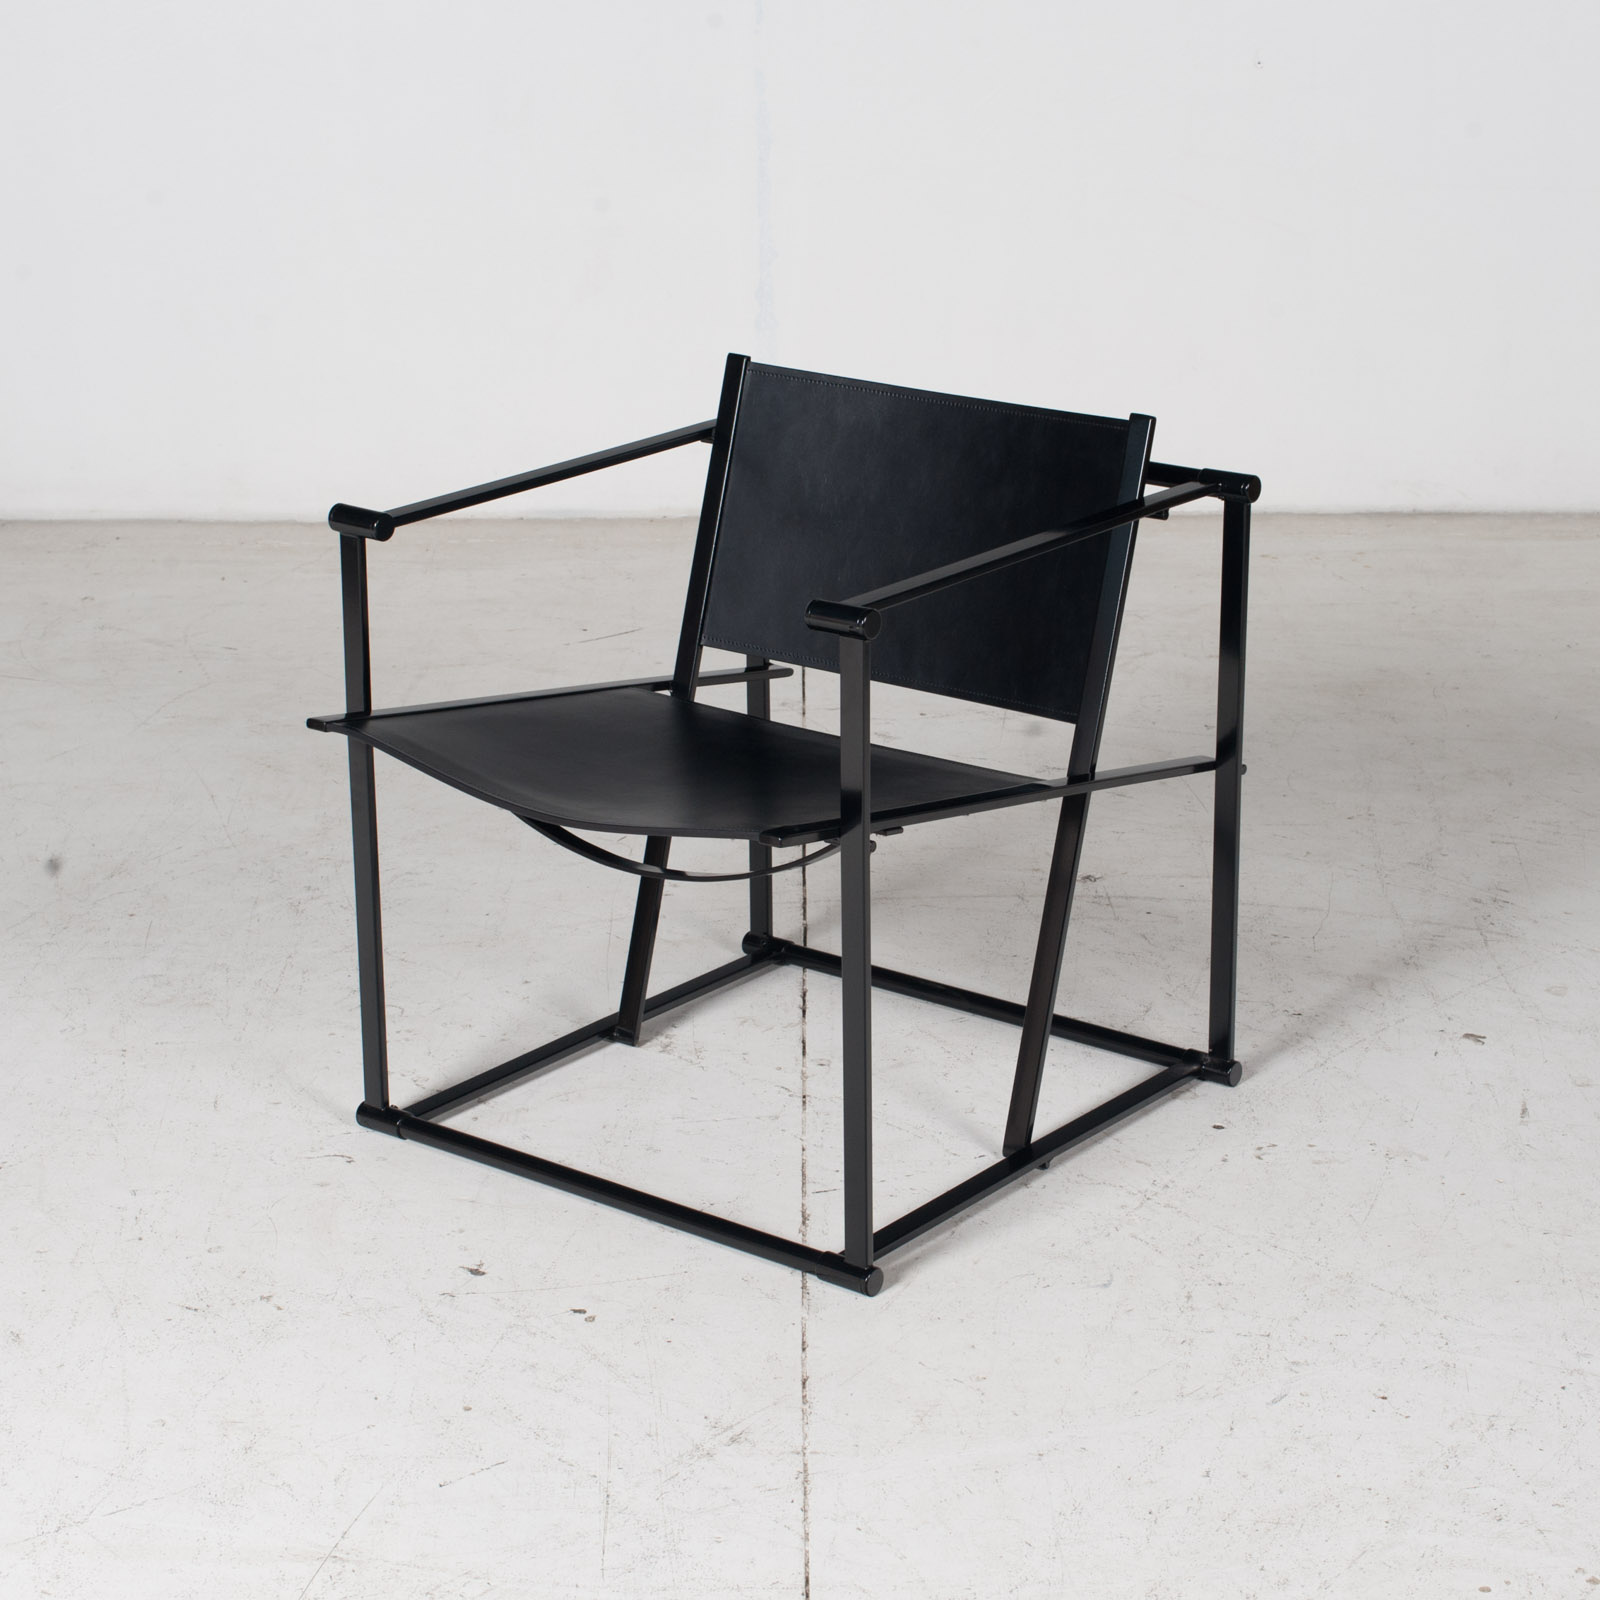 Pair Of Fm60 Cubic Chairs With Table By Radboud Van Beekum For Pastoe, 1980s, The Netherlands 4